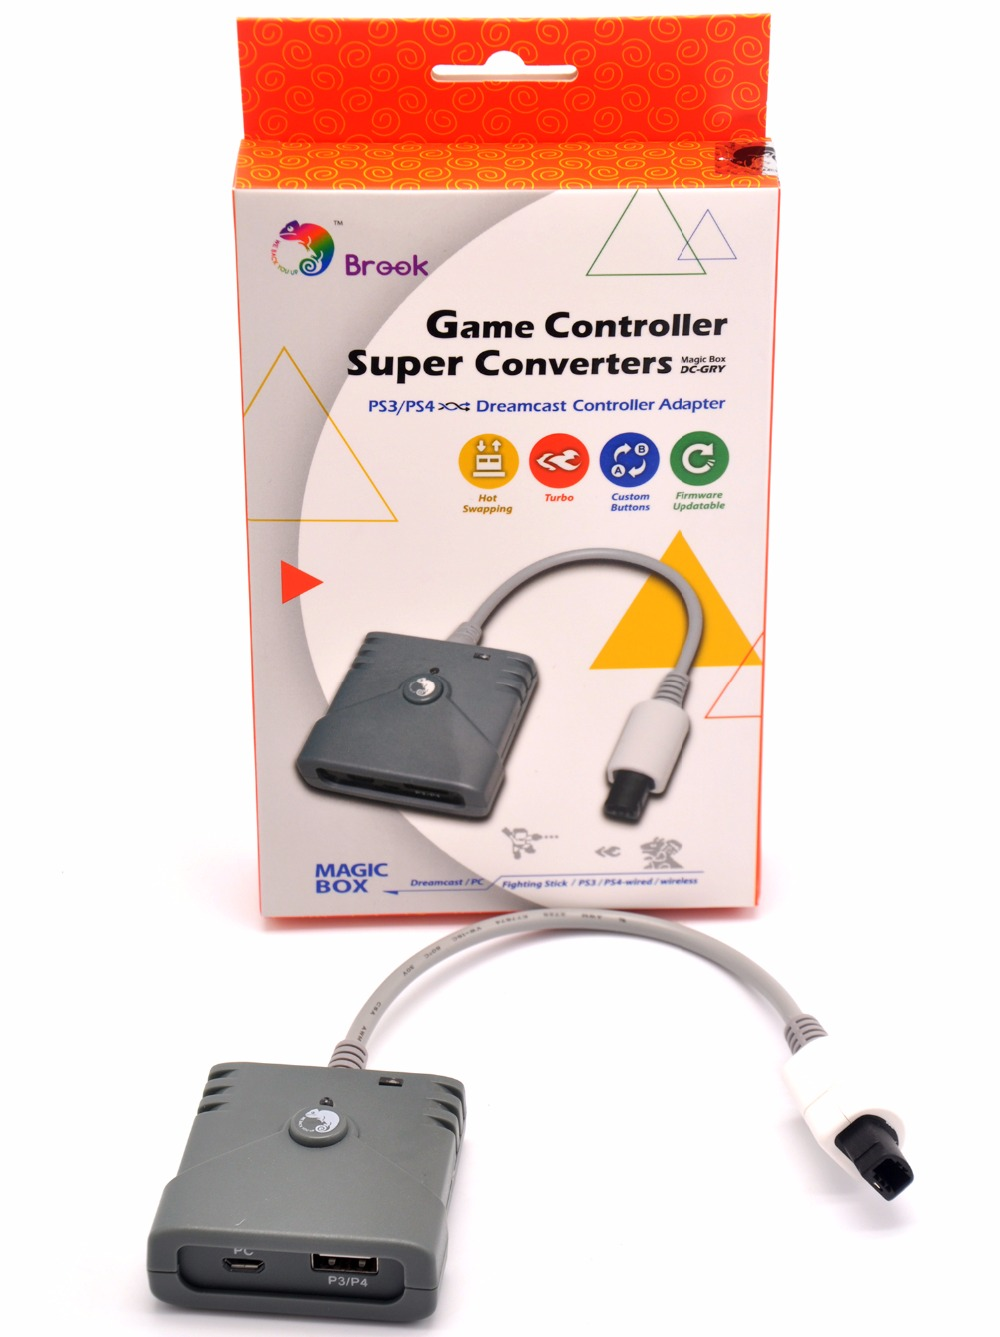 Brook Super Converter for PS3 PS4 to Dreamcast Controller Adapter use Arcade Stick or Wireless PS3